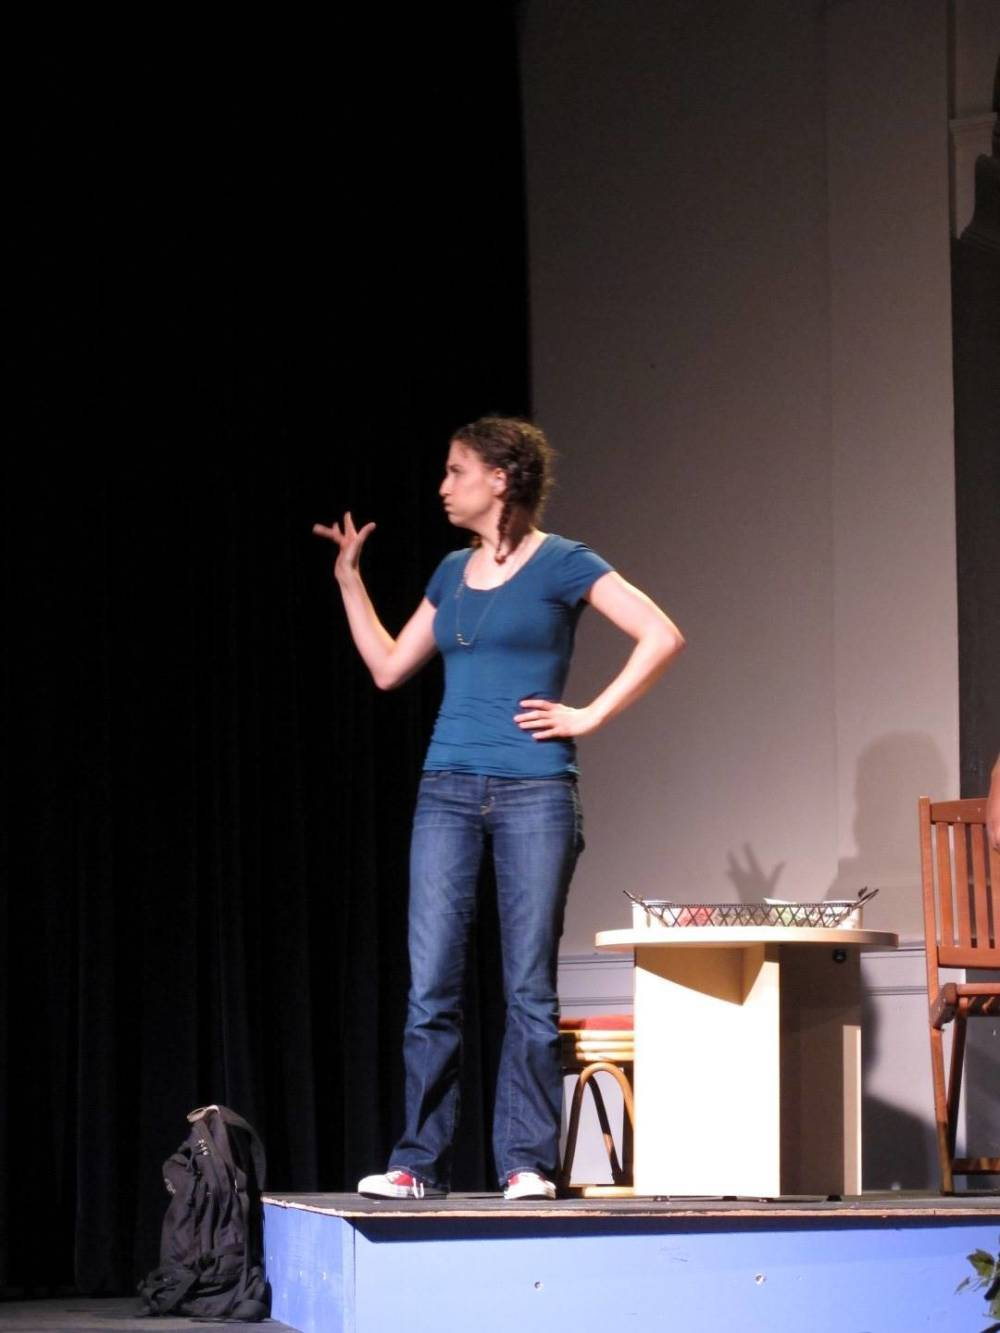 Andrea in 2012 as an actor in 'Waiting for Rosalie', a play performed entirely in American Sign Language by Deaf and hearing actors. Produced by Abused Deaf Women's Advocacy Services as part of Sexual Assult Awareness Month. Photo: Jason Tang